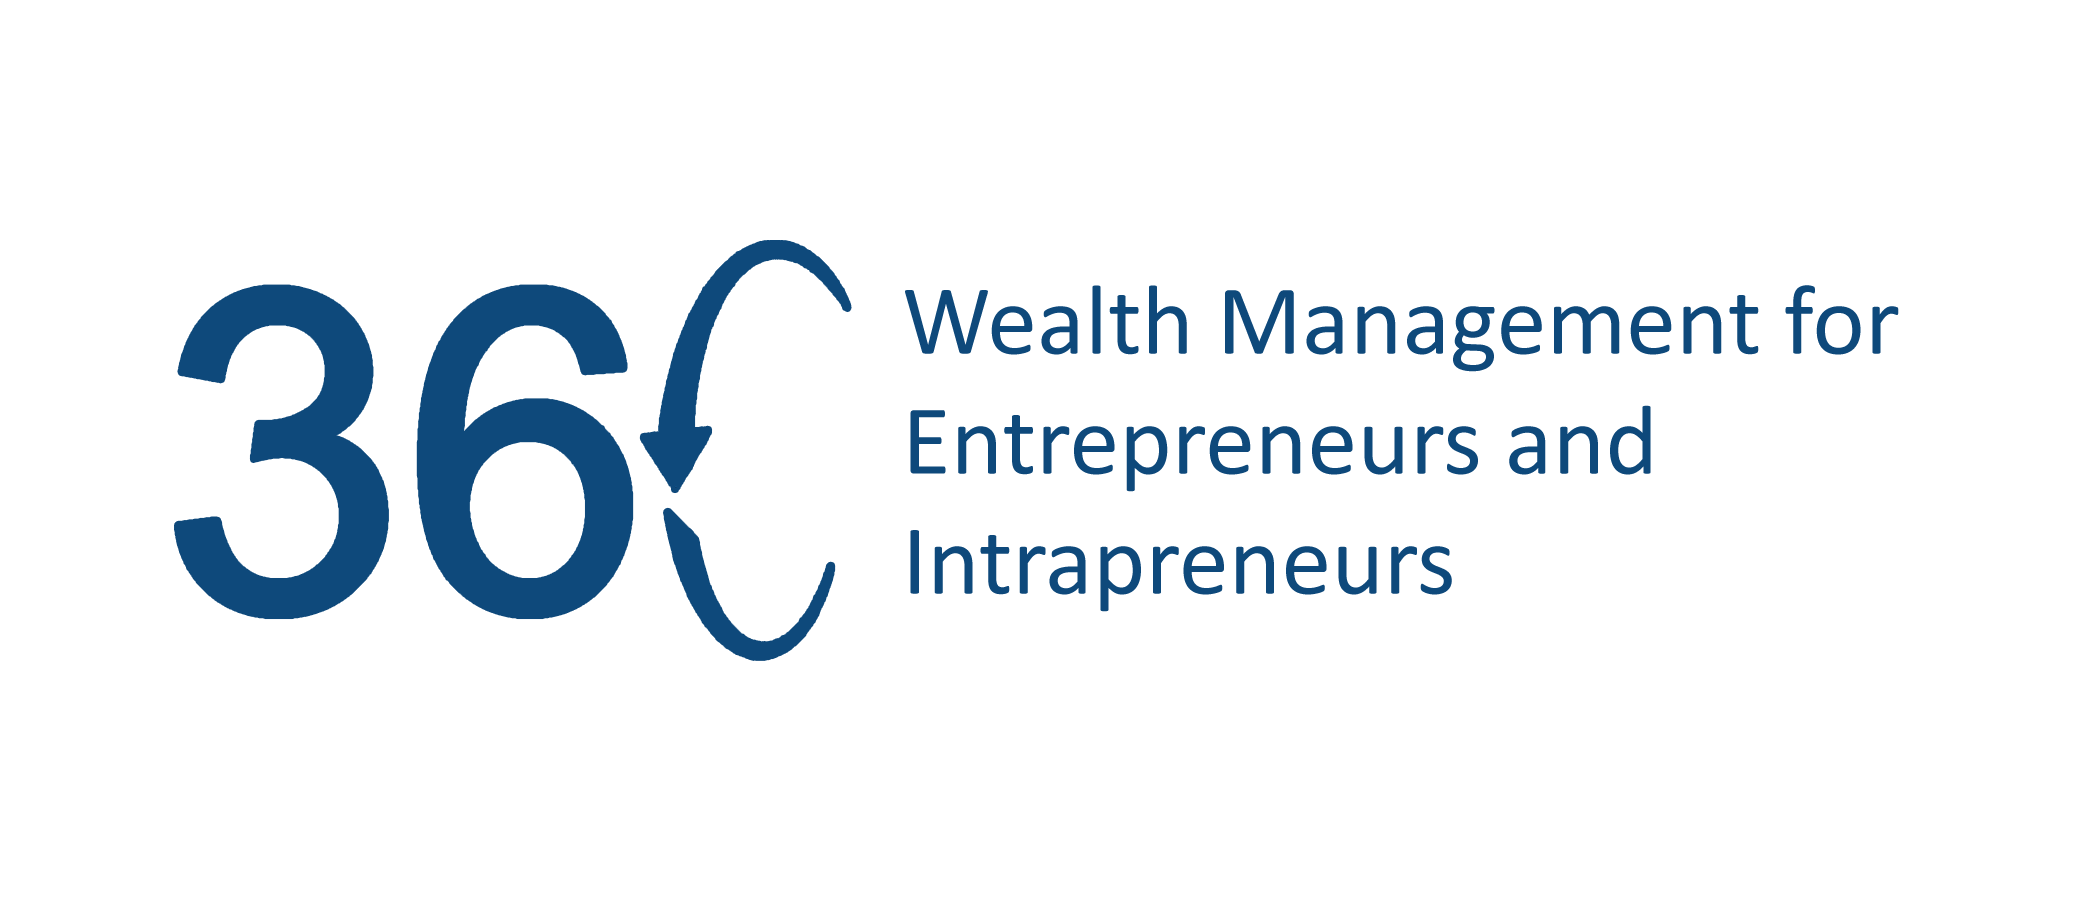 360 Wealth Management for Entrepreneurs and Intrapreneurs